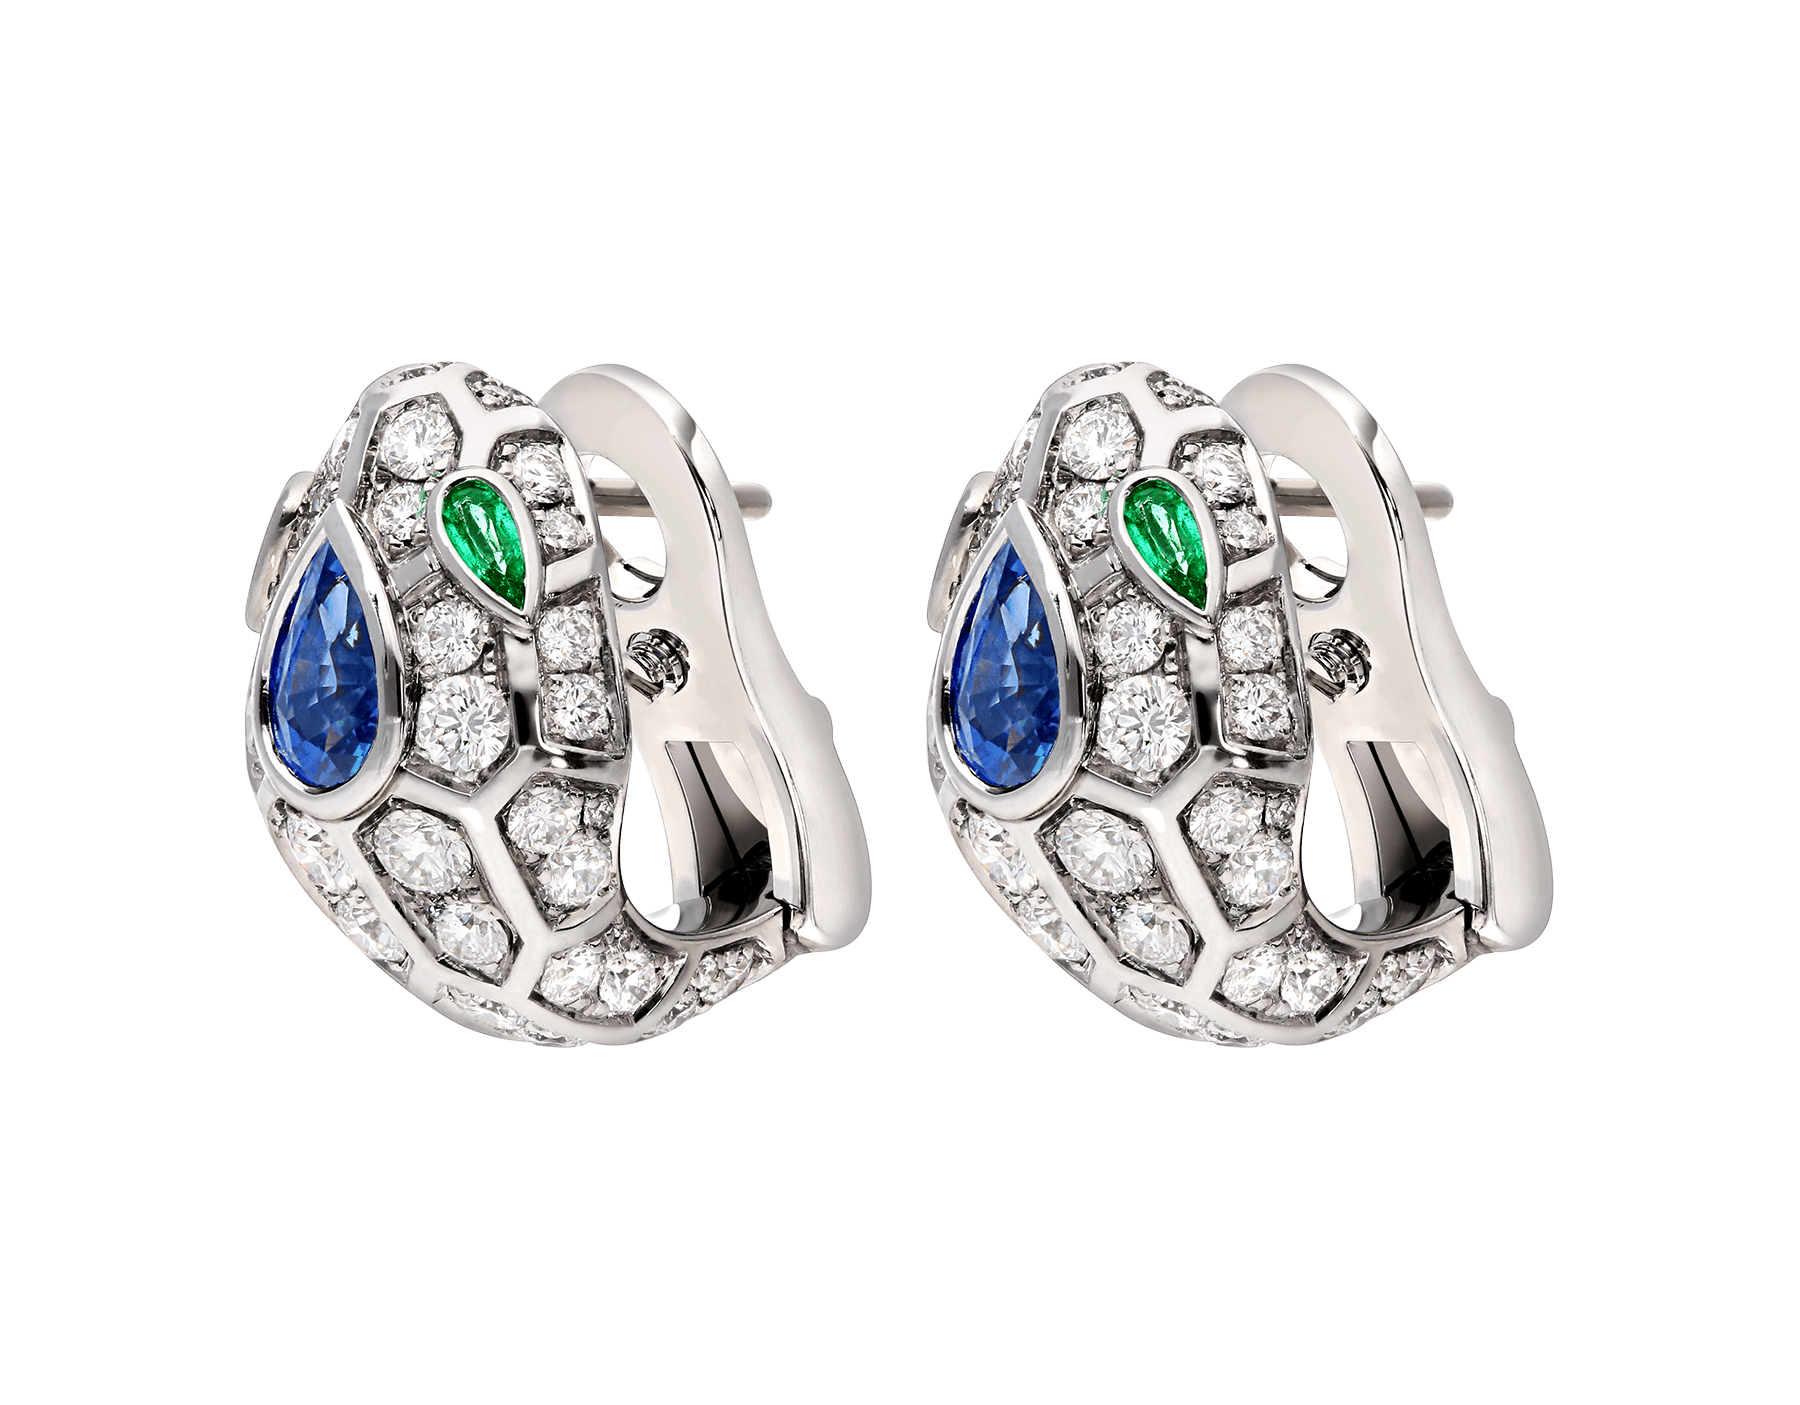 Serpenti 18 kt white gold earrings, set with a blue sapphire on the head, emerald eyes and pavé diamonds. 355355 image 2